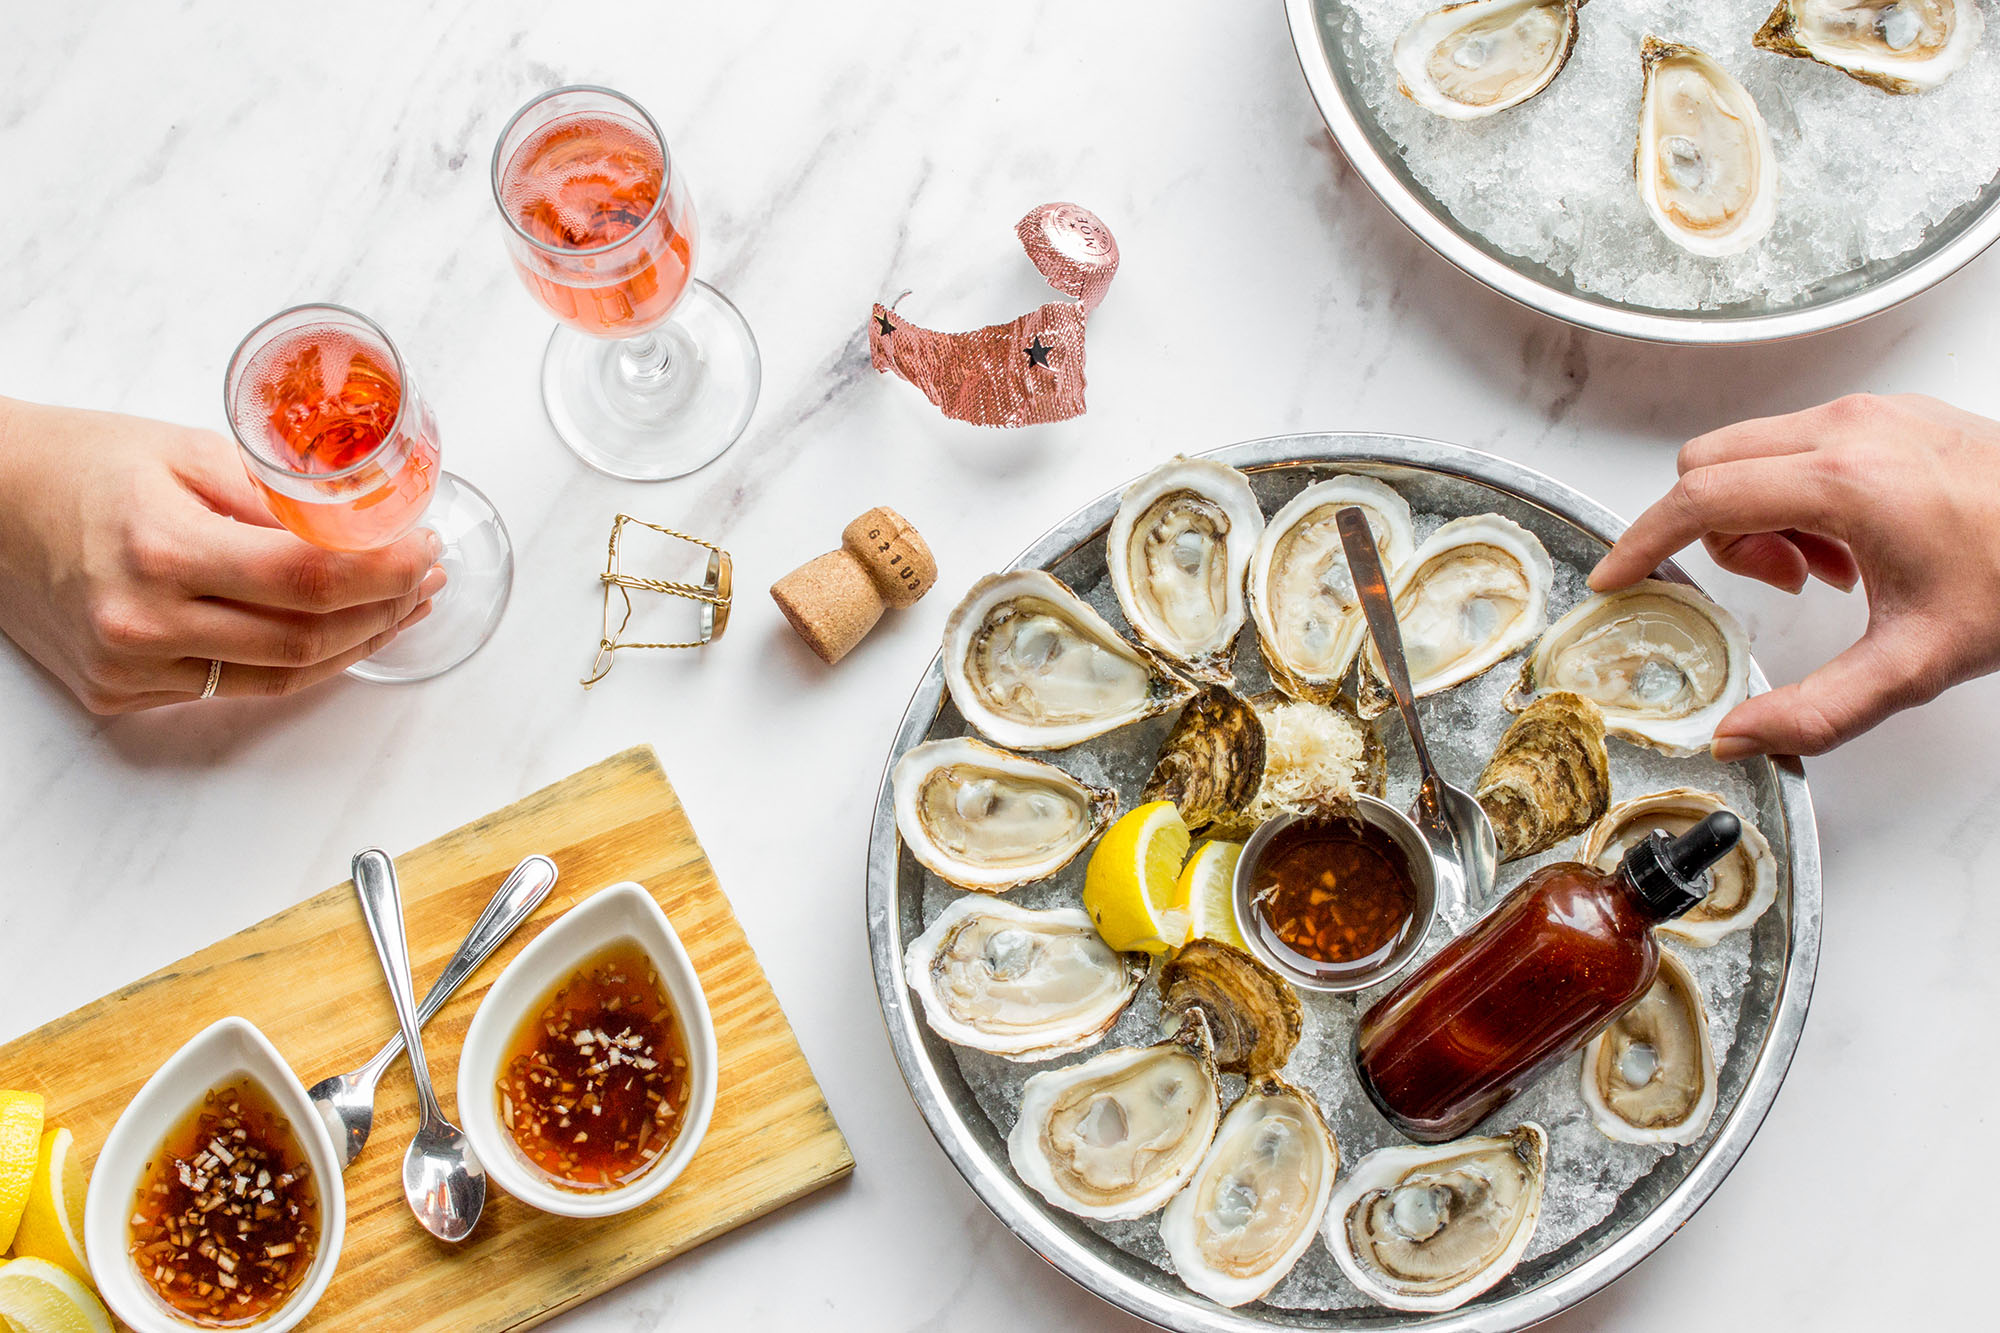 two people sharing a platter of oysters and two glasses of rose wine